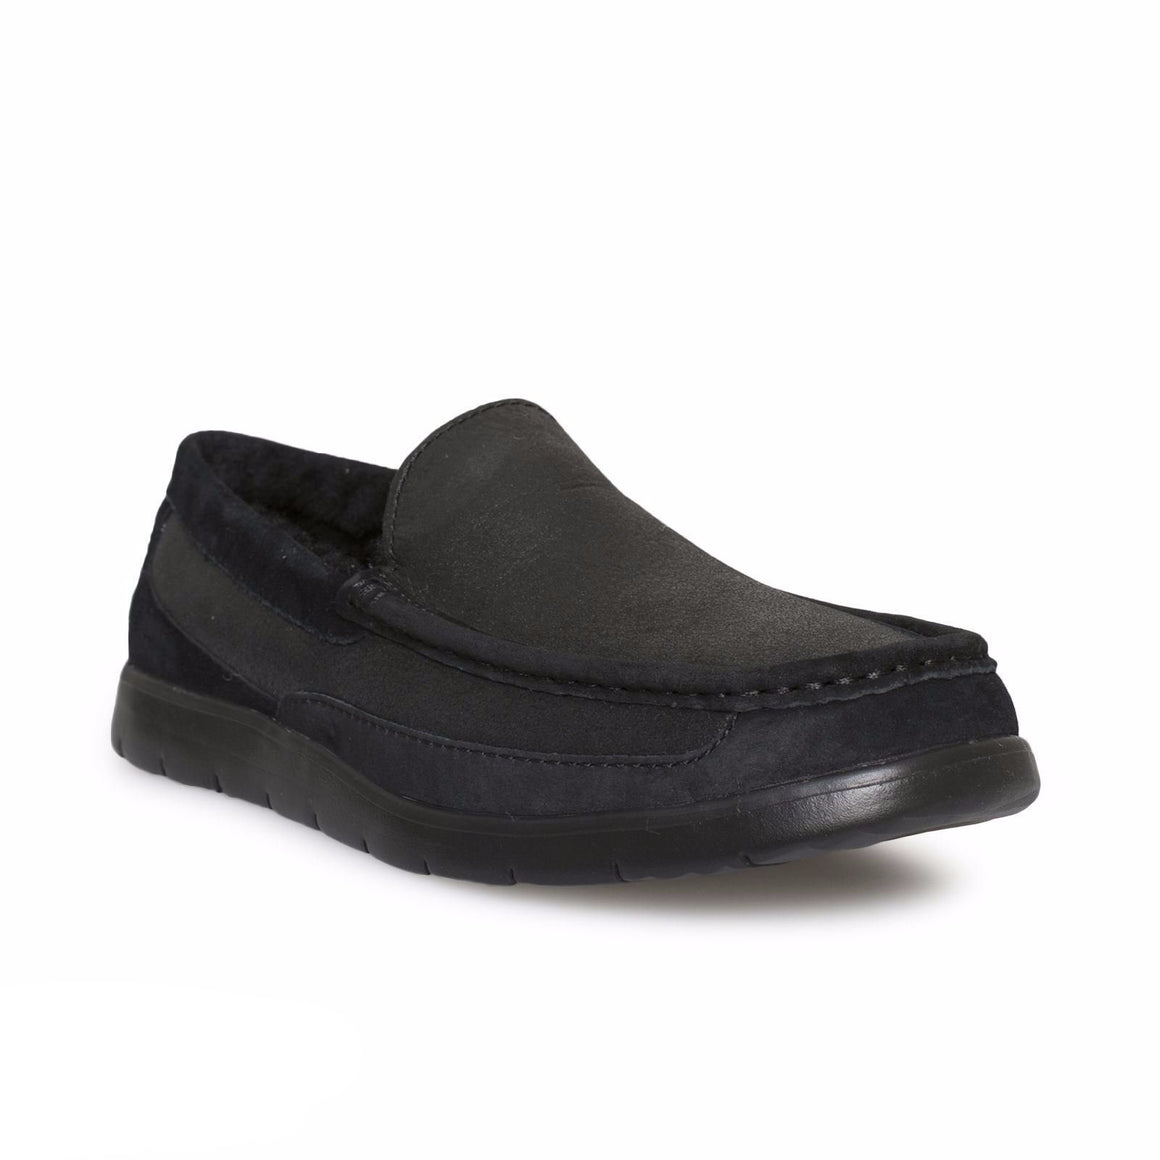 UGG Fascot Bomber Jacket Black Slippers